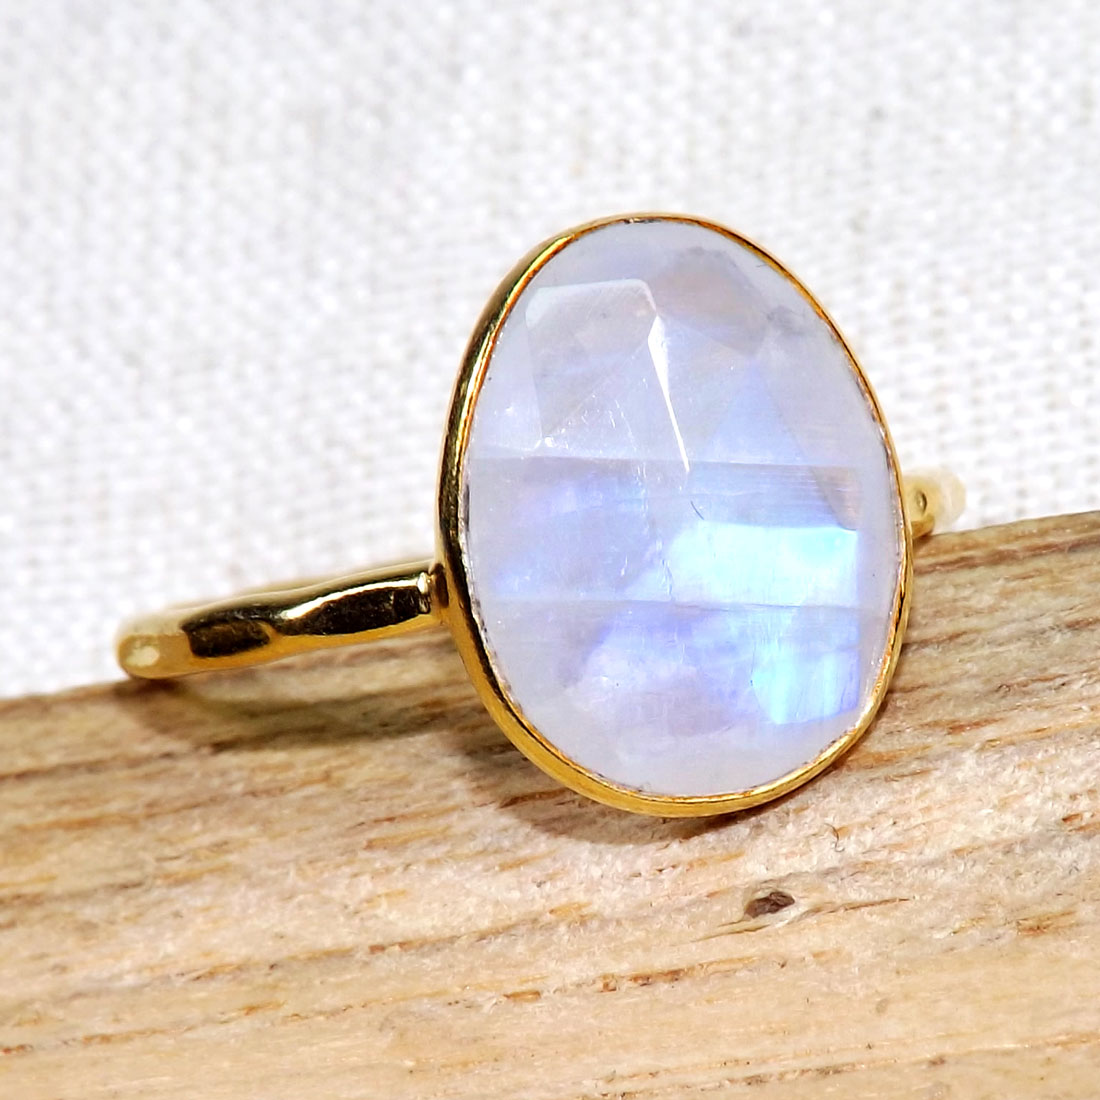 Rainbow moonstone O - BGR968-Light Weight Rings of 18crt Gold Plated 925 Sterling Silv